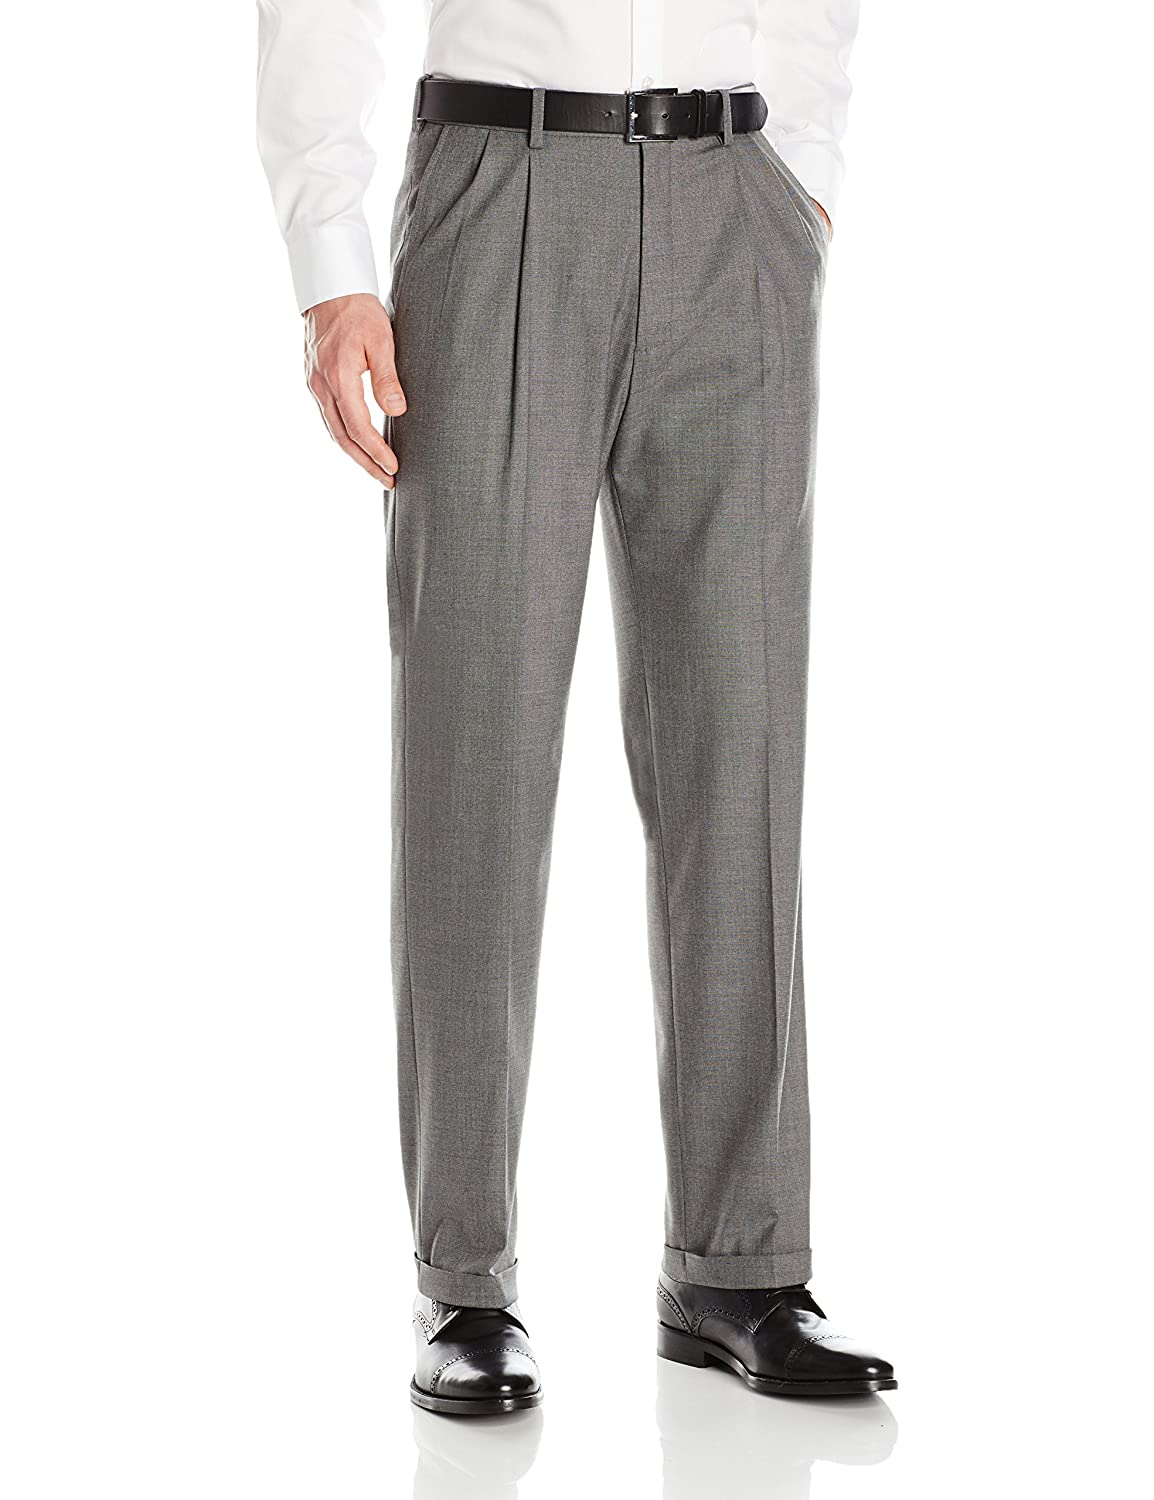 1950s Men's Pants, Trousers, Shorts | Rockabilly Jeans, Greaser Styles J.M. Haggar Mens Premium Stretch Classic Fit Pleat Front Pant $57.39 AT vintagedancer.com